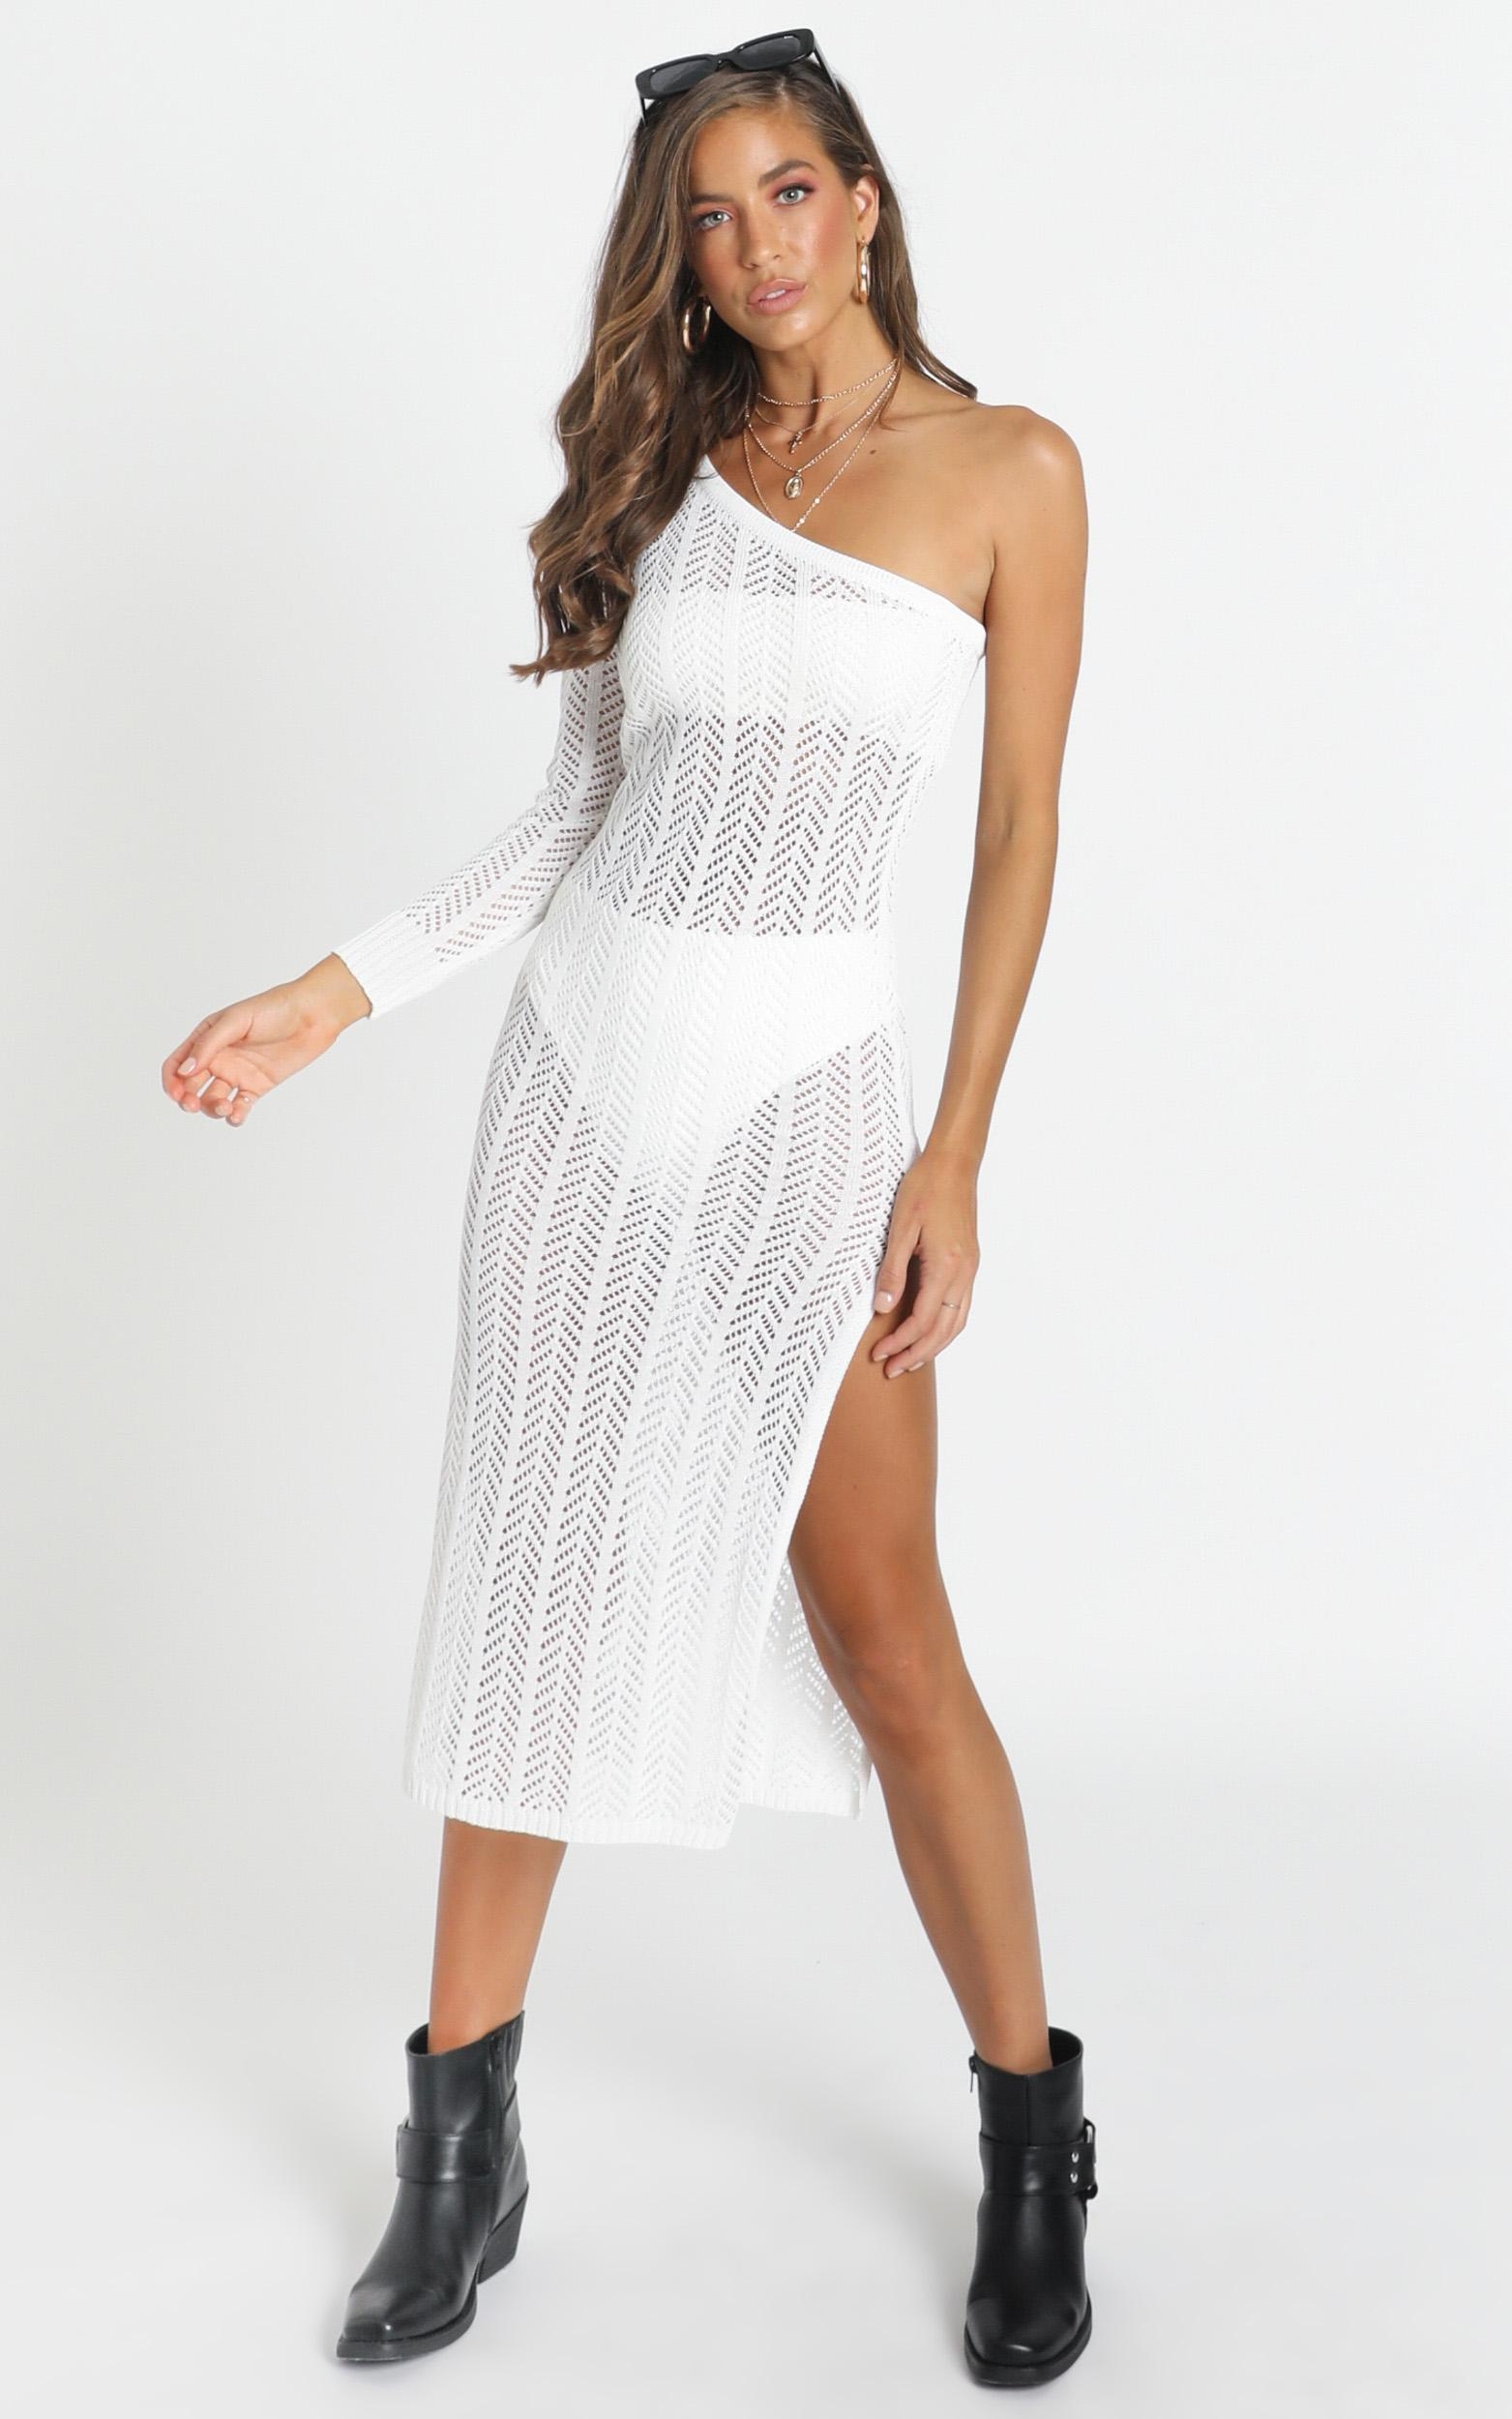 Drop Your Love Knit Dress in white - 20 (XXXXL), White, hi-res image number null